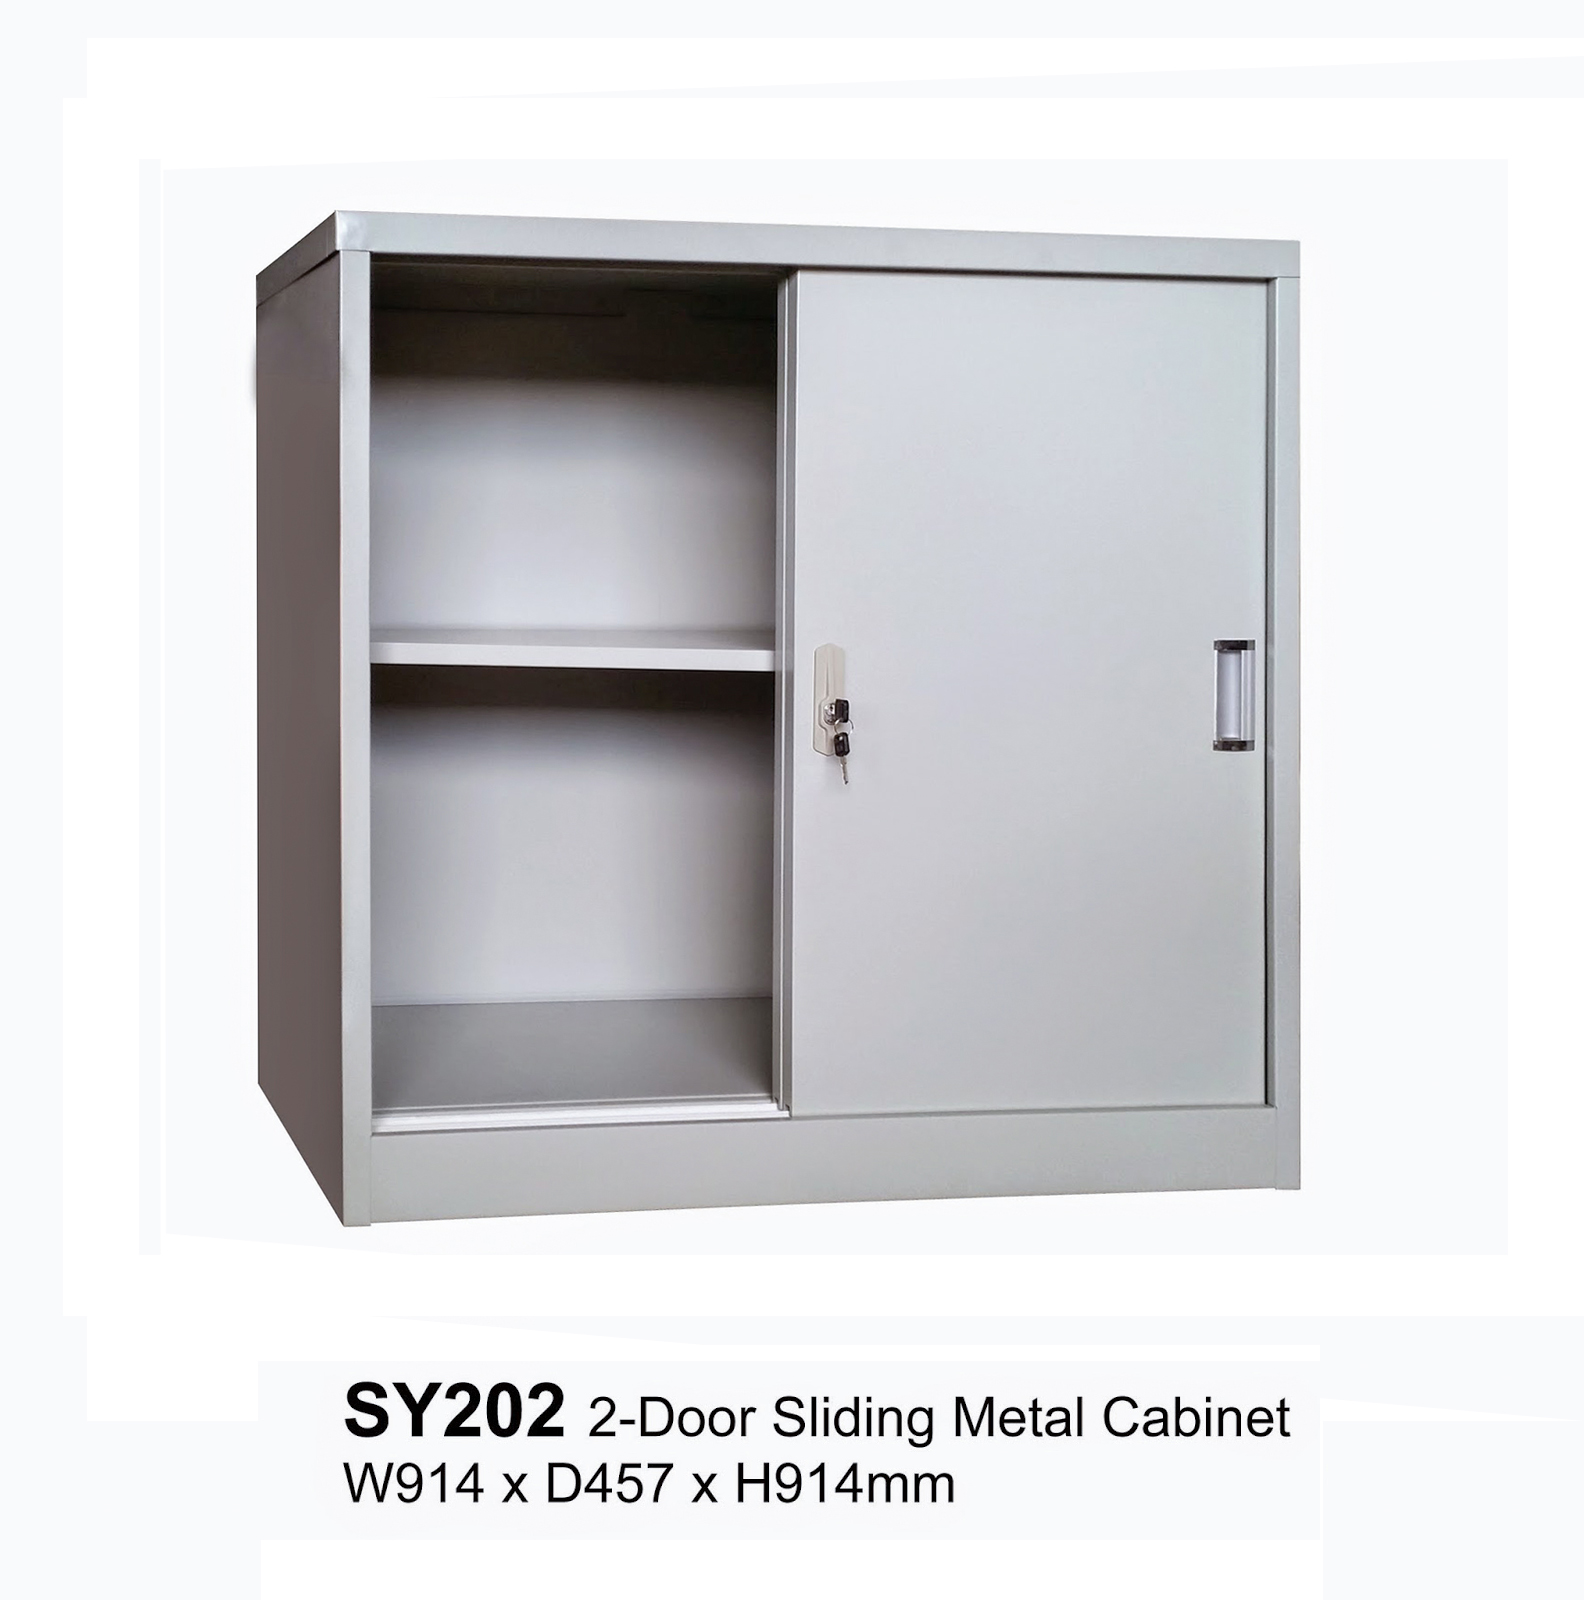 Sy202 Sliding Door Half Height Metal Cabinet 180 Ready Stock All The Price Subject To Gst 7 Delivery 30 Trip If Your Purchase Less Than 1000